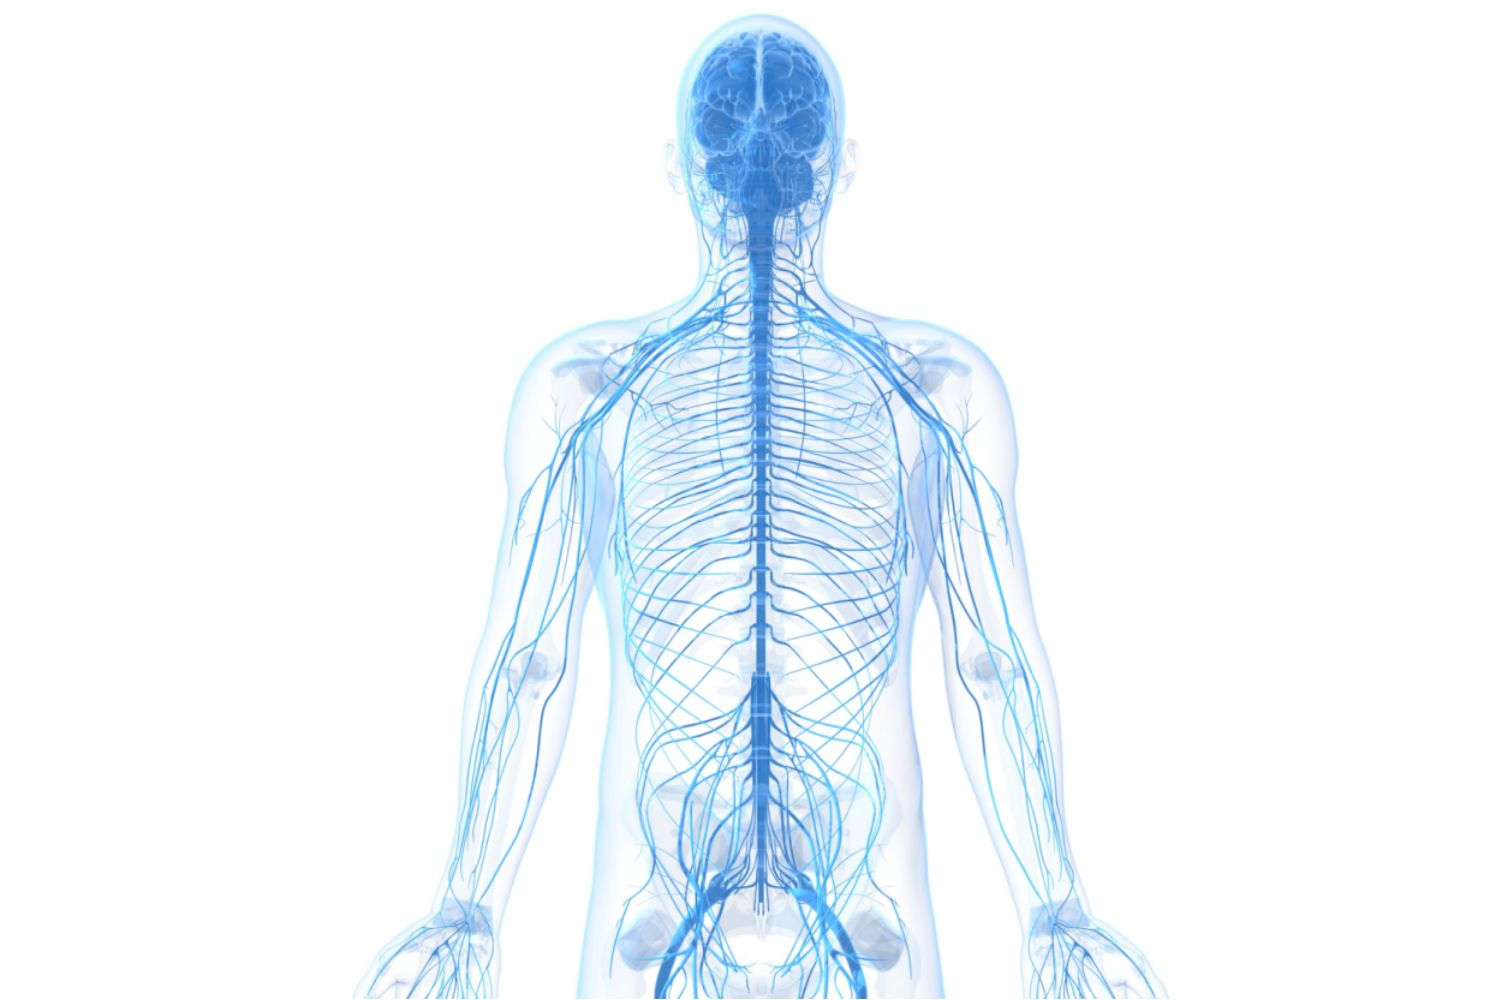 The Peripheral Nervous System and What it Does